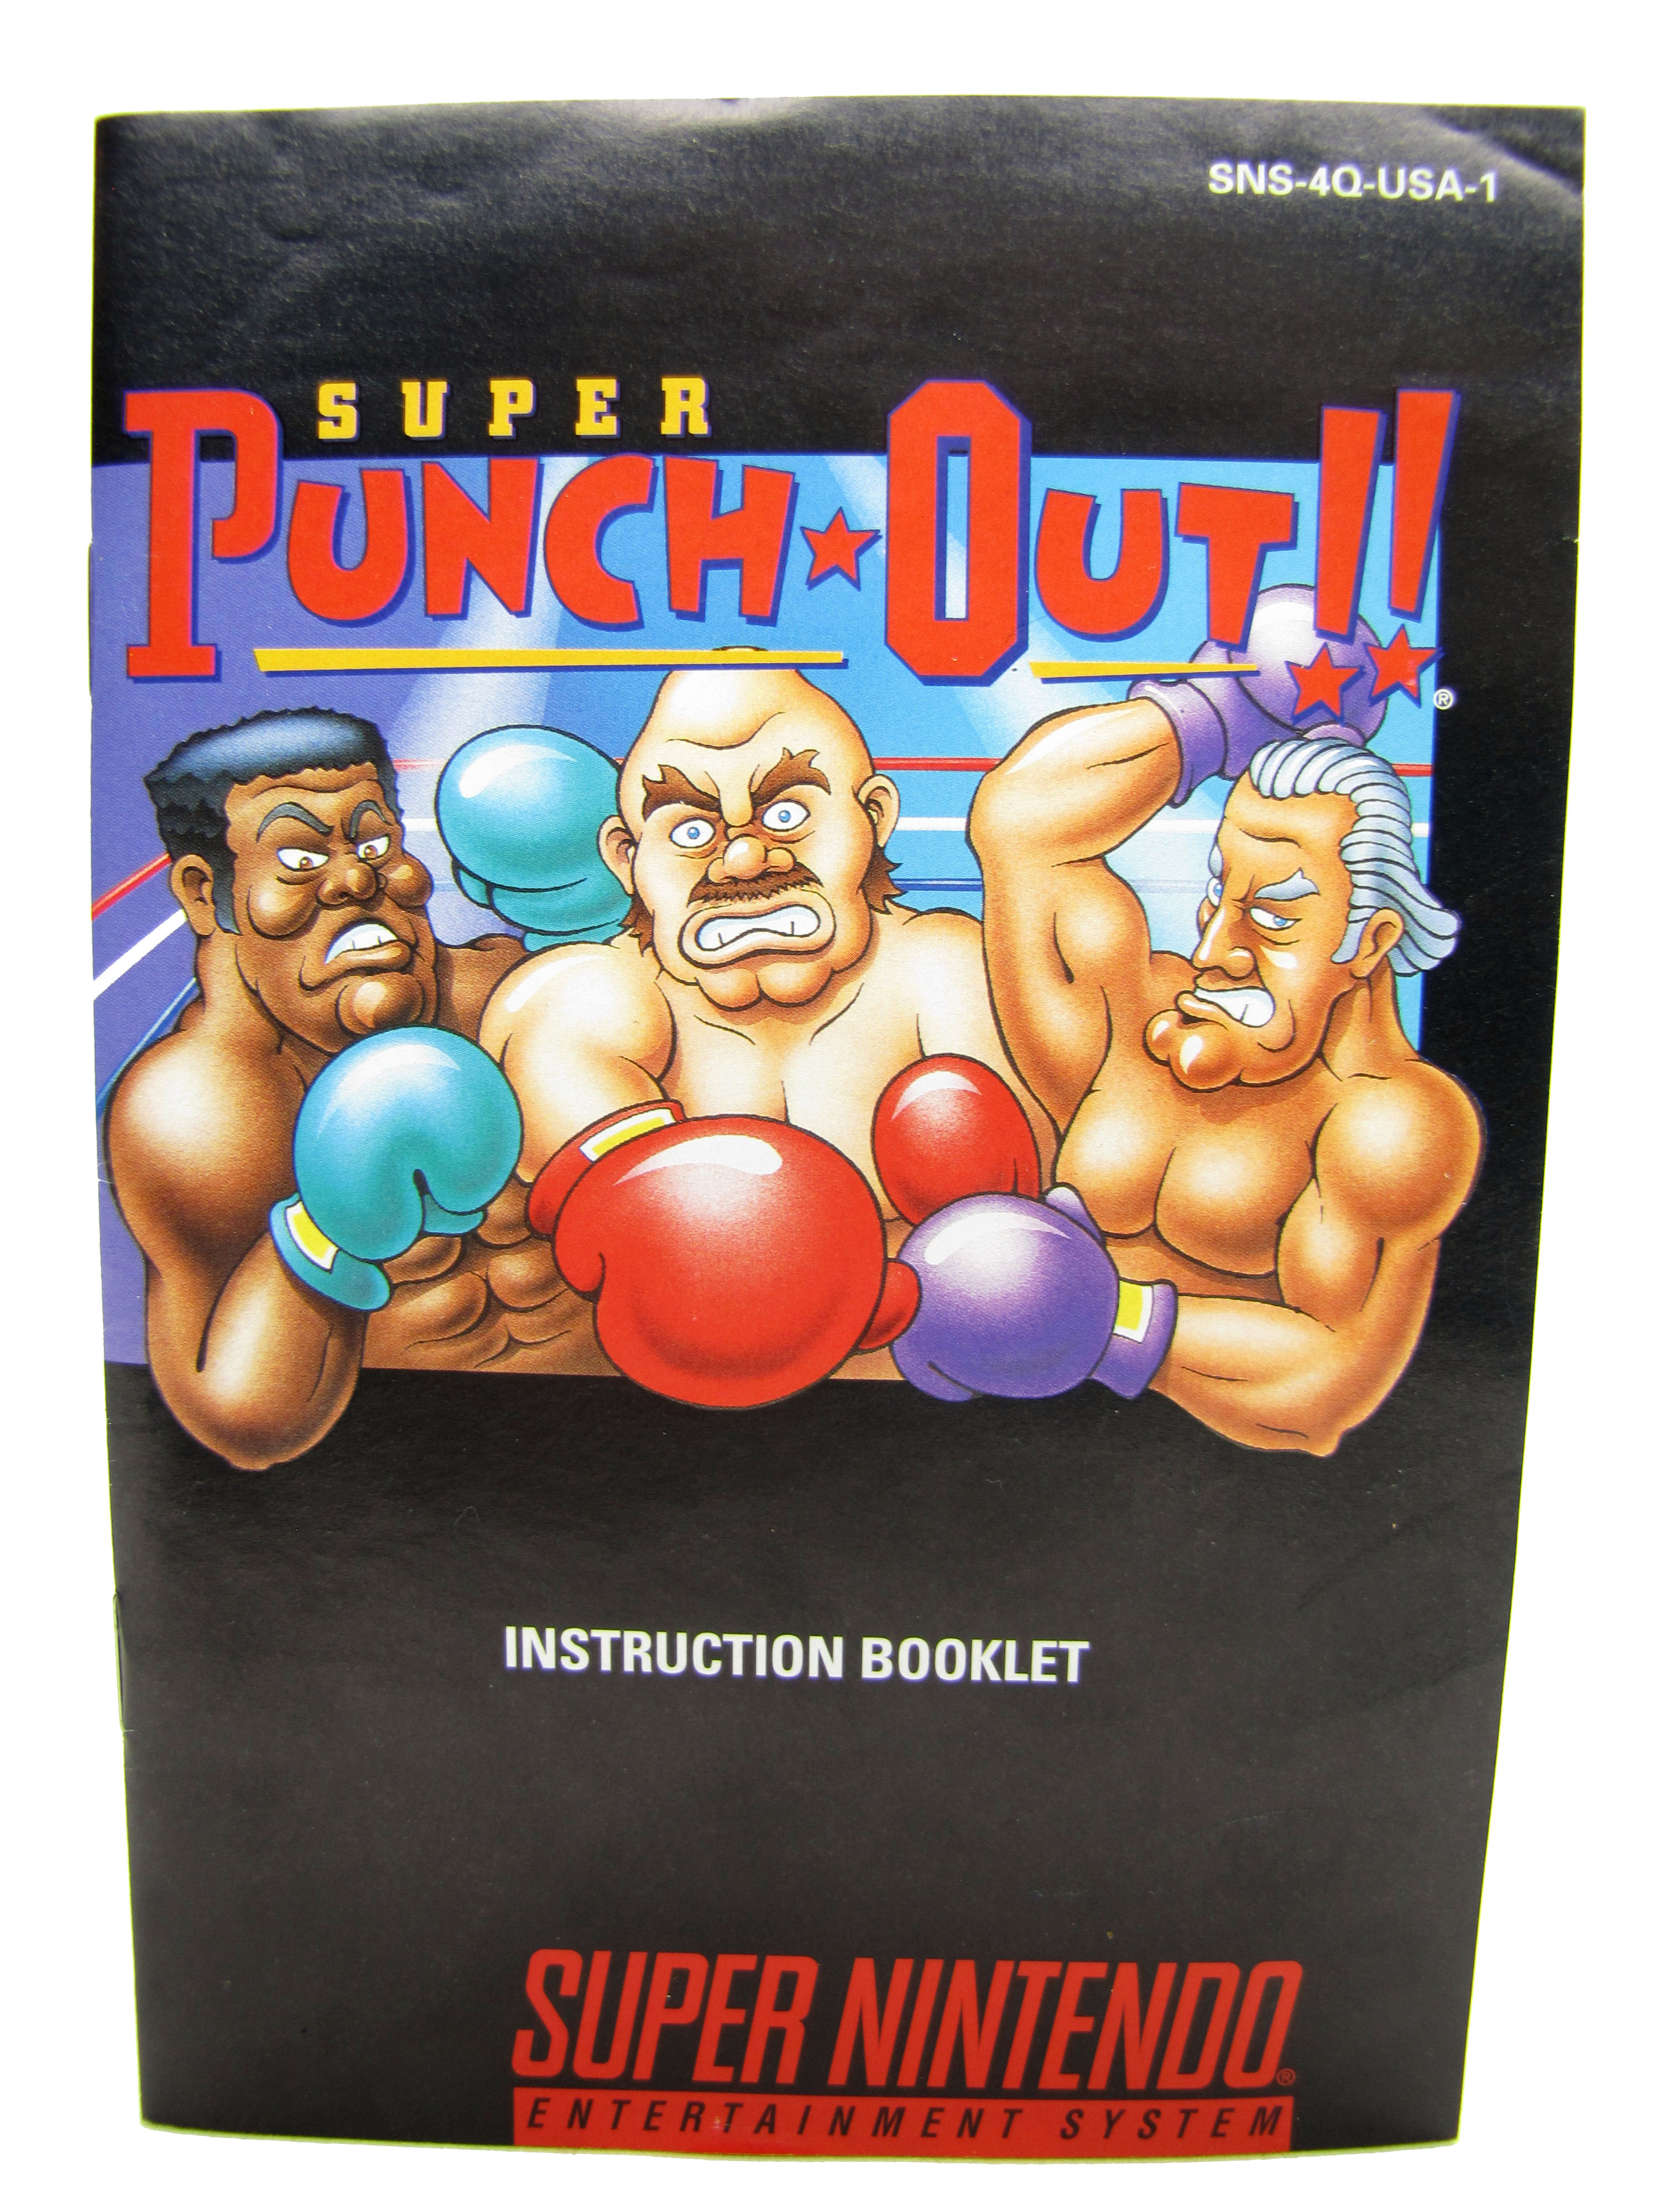 SNES Super Punch Out!! Instruction Booklet - 1994